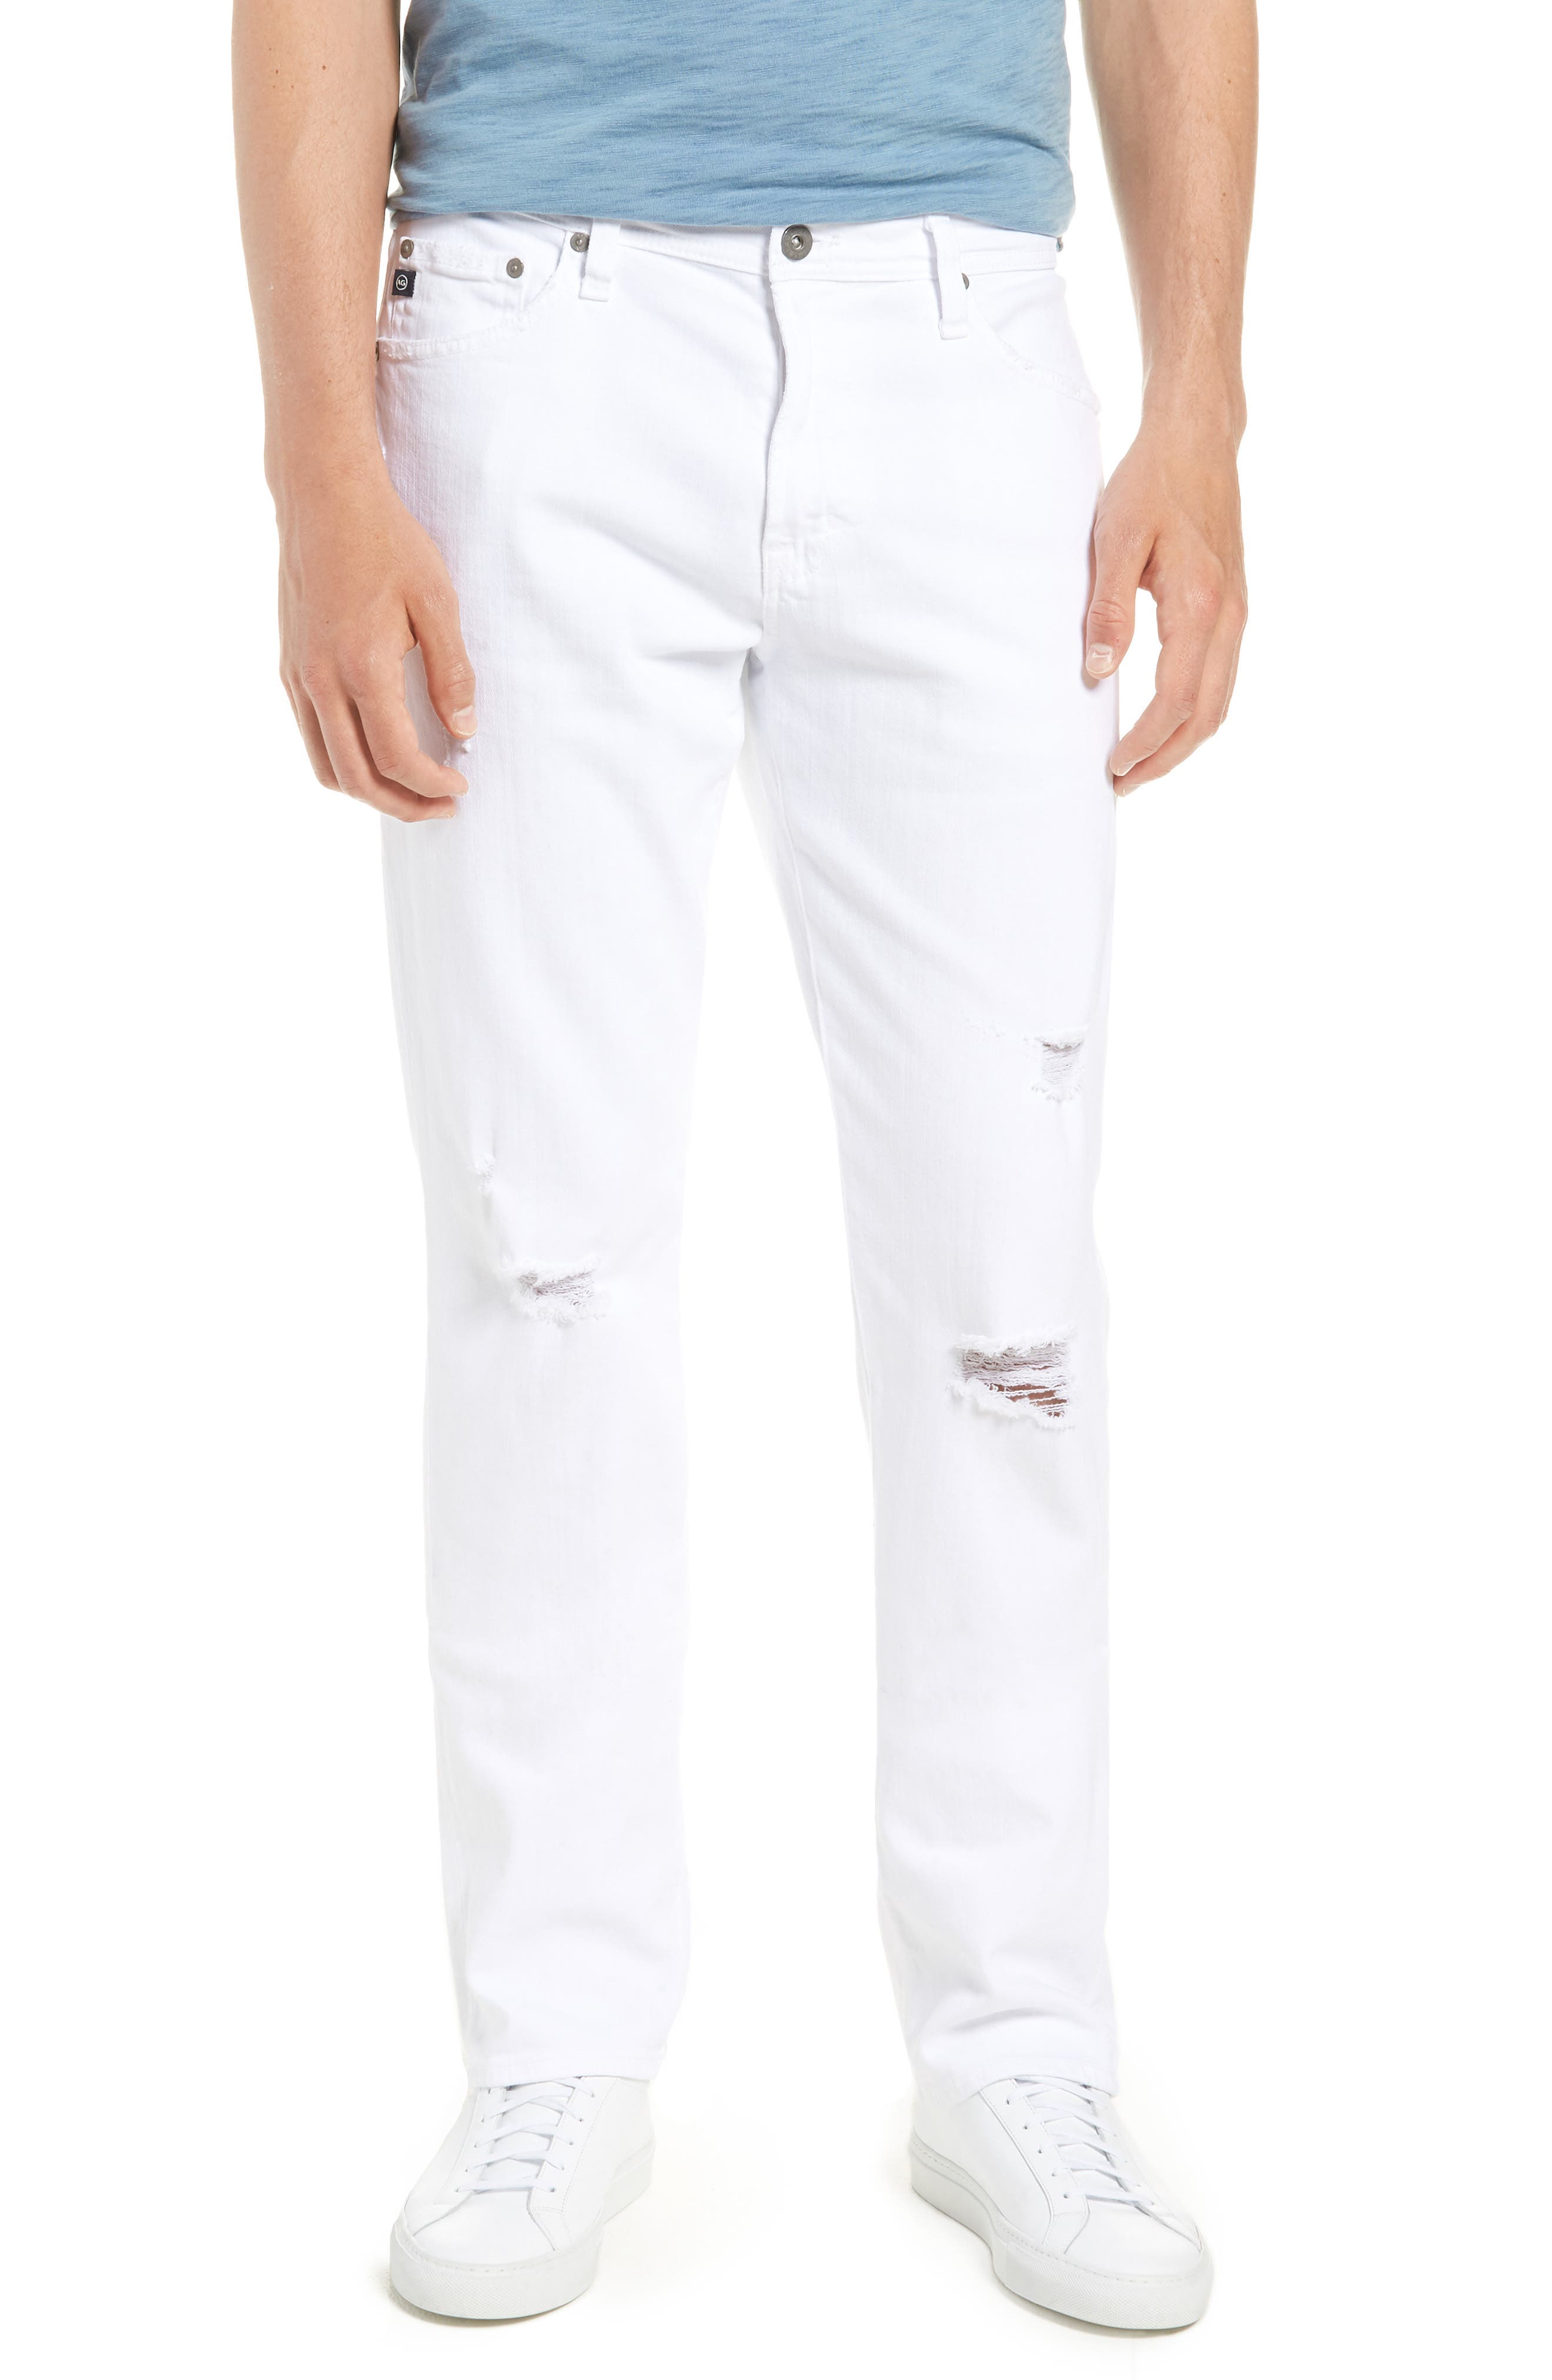 Everett Slim Straight Leg Jeans,                         Main,                         color, White Crash